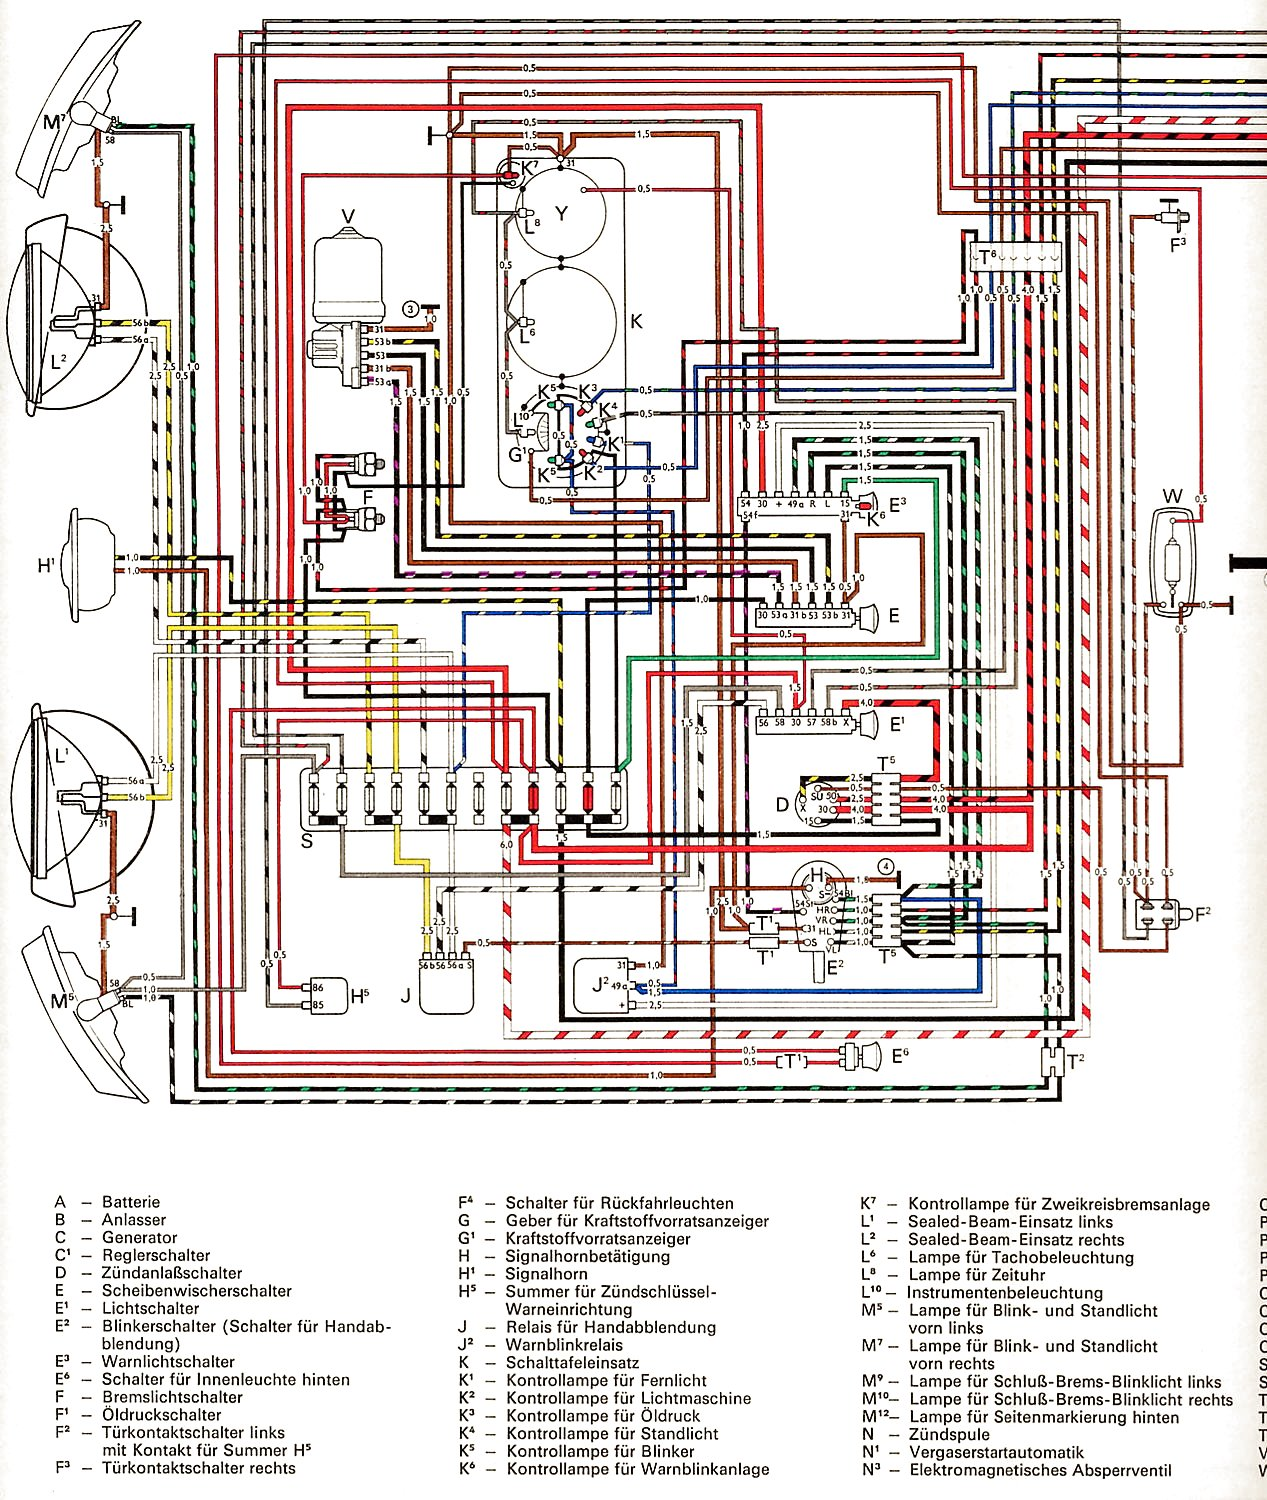 vintagebus com vw bus and other wiring diagrams rh vintagebus com vw wiring diagram alternator vw wiring diagram beetle